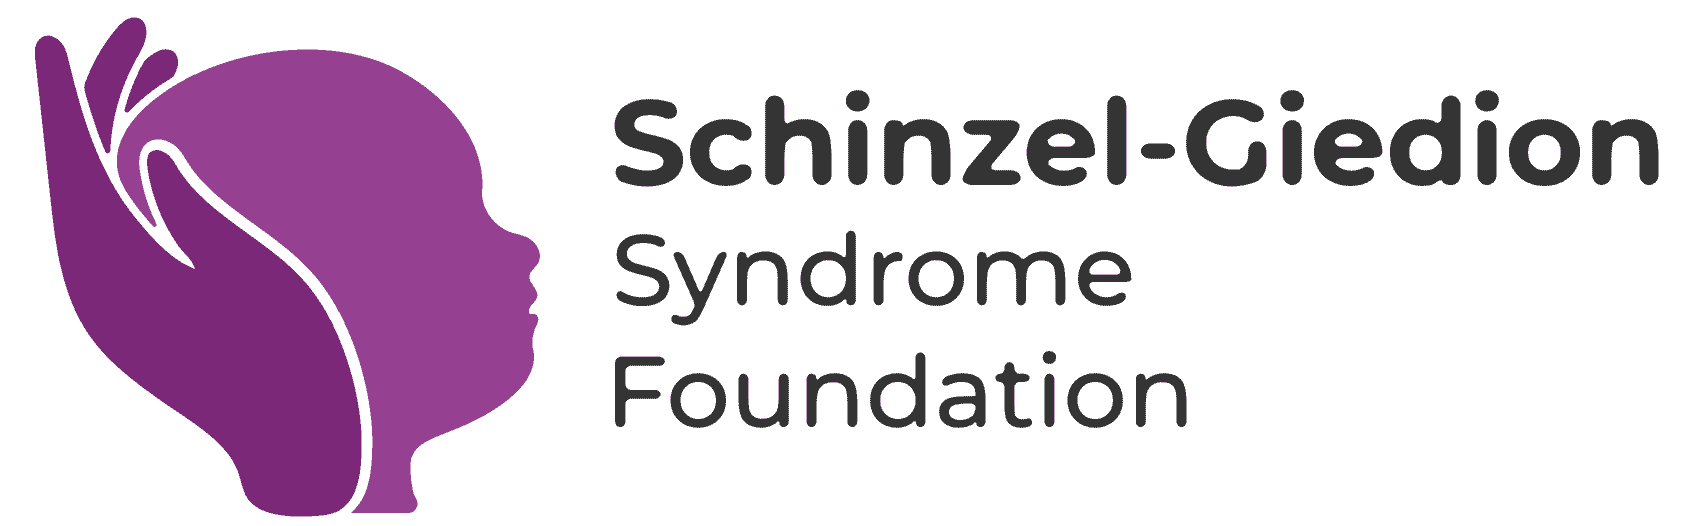 Schinzel-Giedion Syndrome Foundation